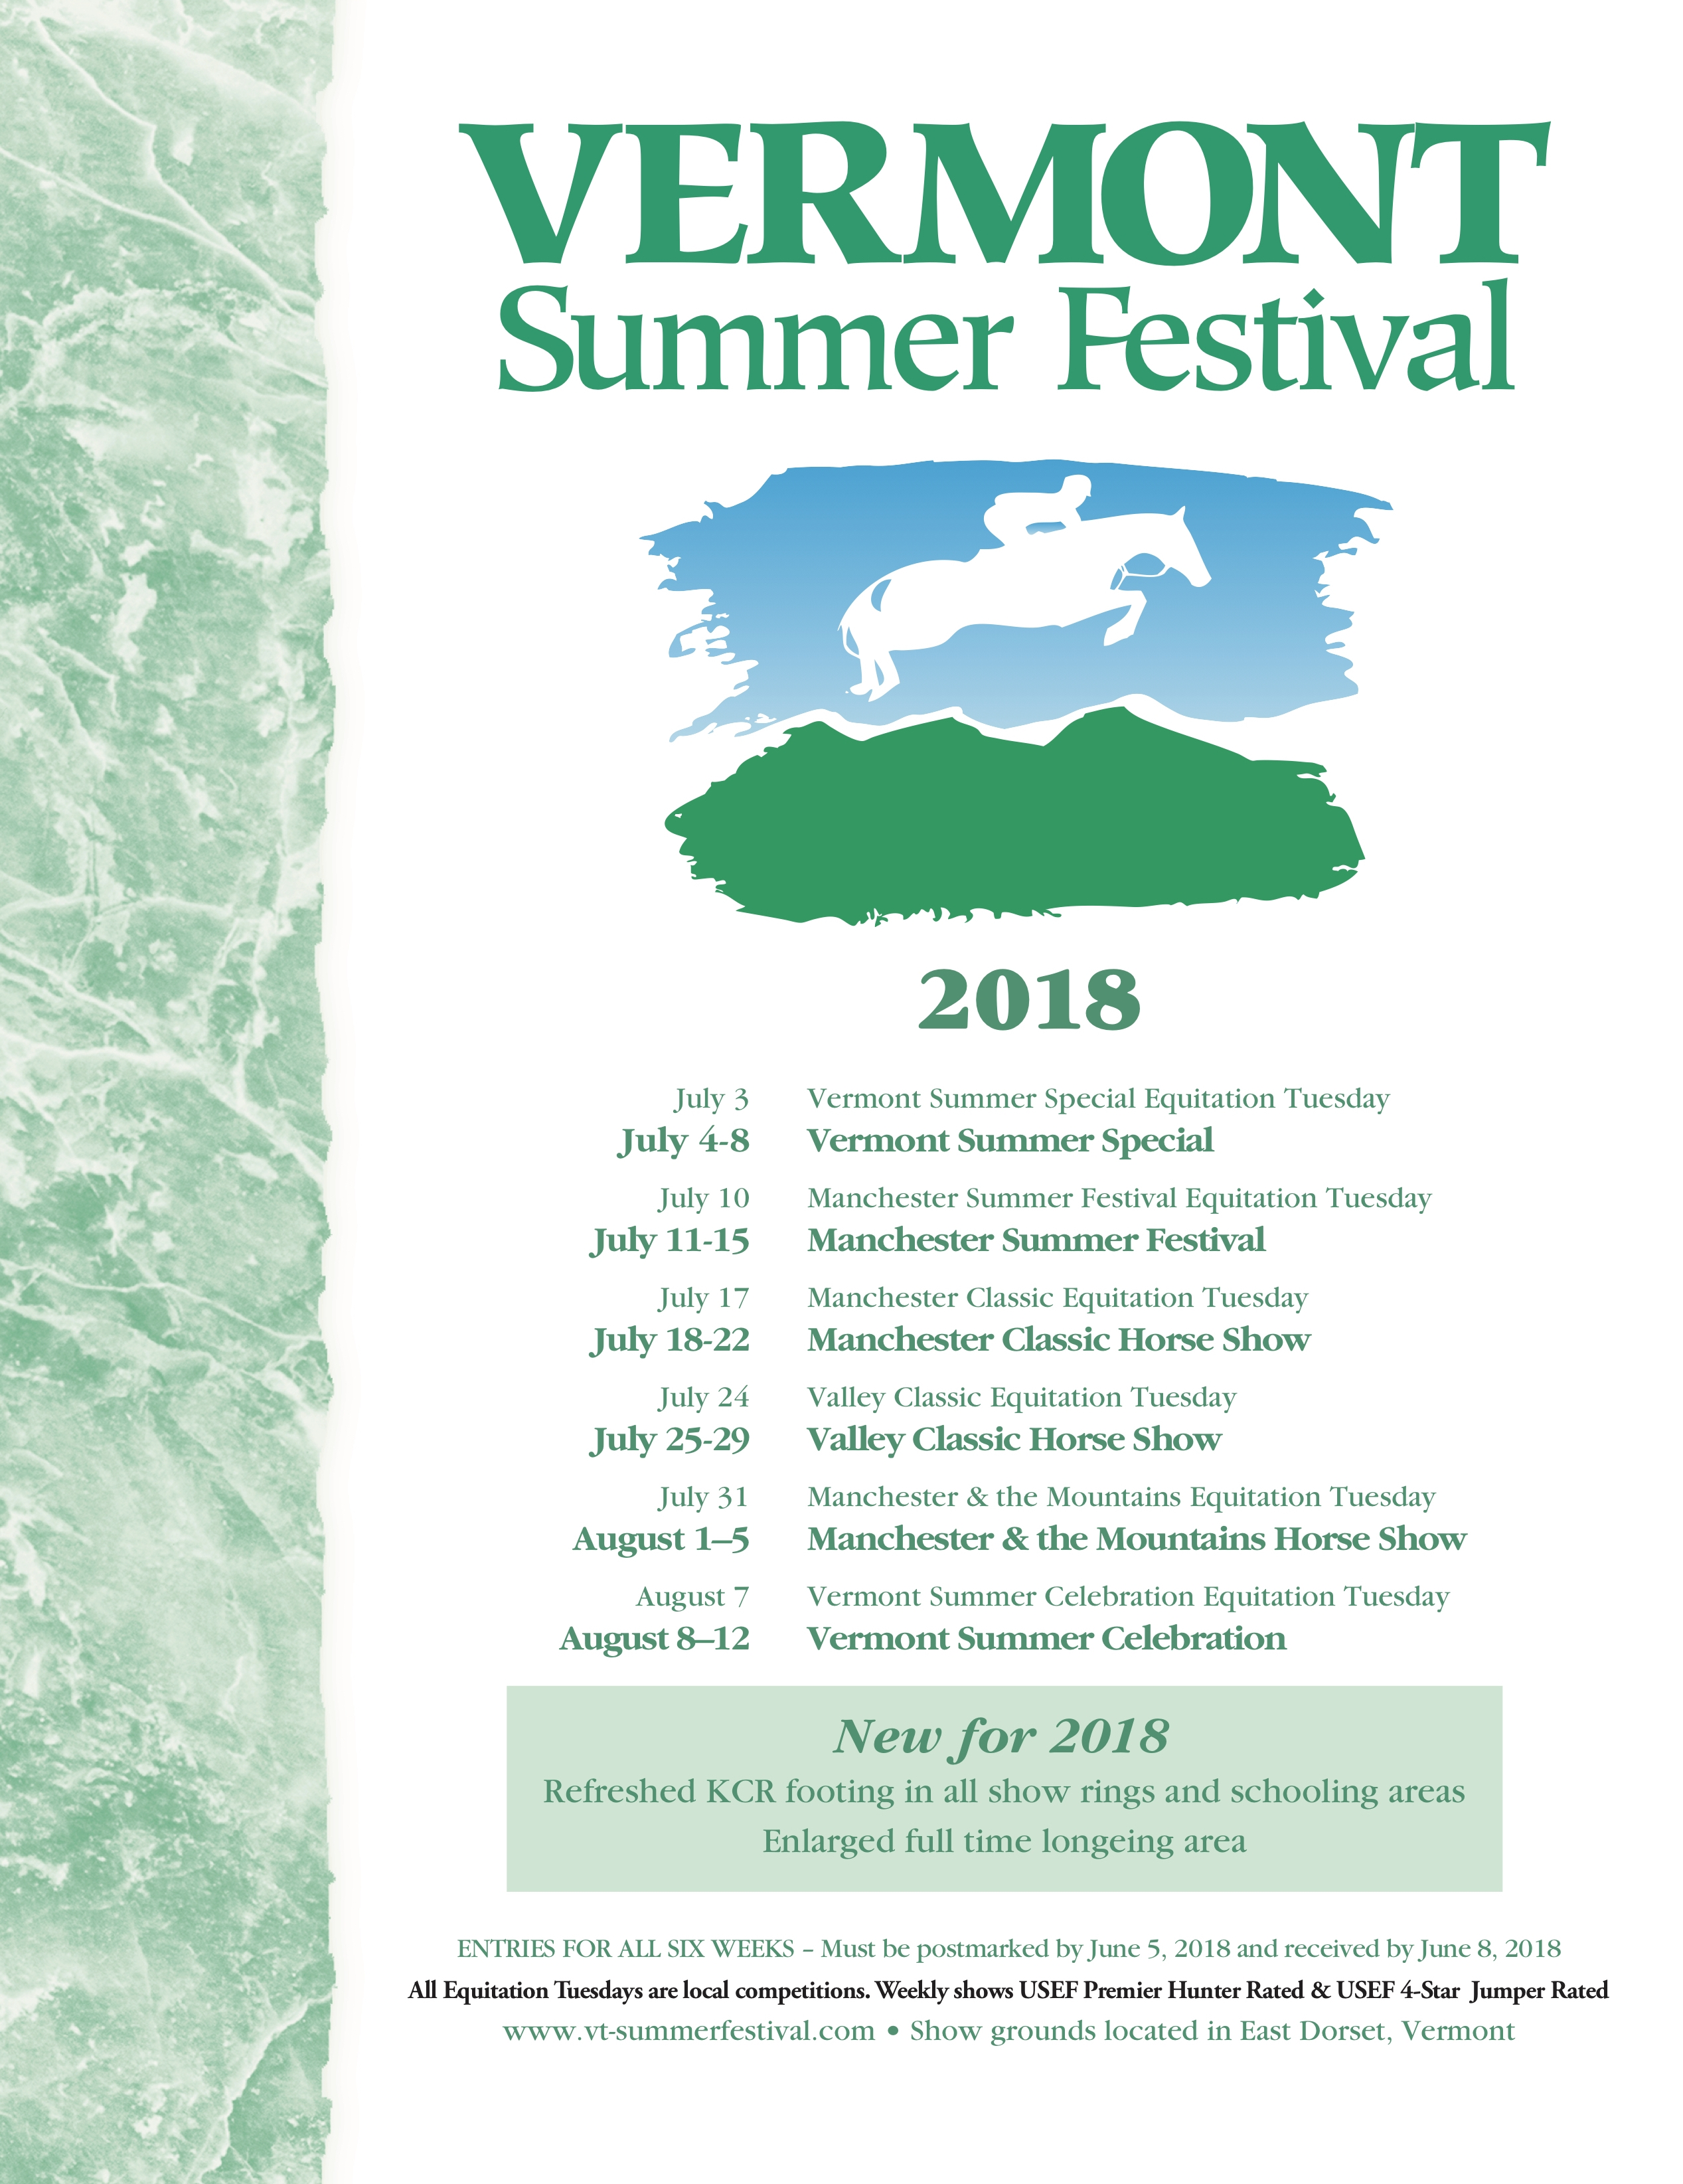 The prize list for the Vermont Summer Festival's 25th anniversary season is now available with entries due on June 5.<b><a href='https://www.vt-summerfestival.com/prize.php'target='_blank'>Click to view prize list.</a></b>